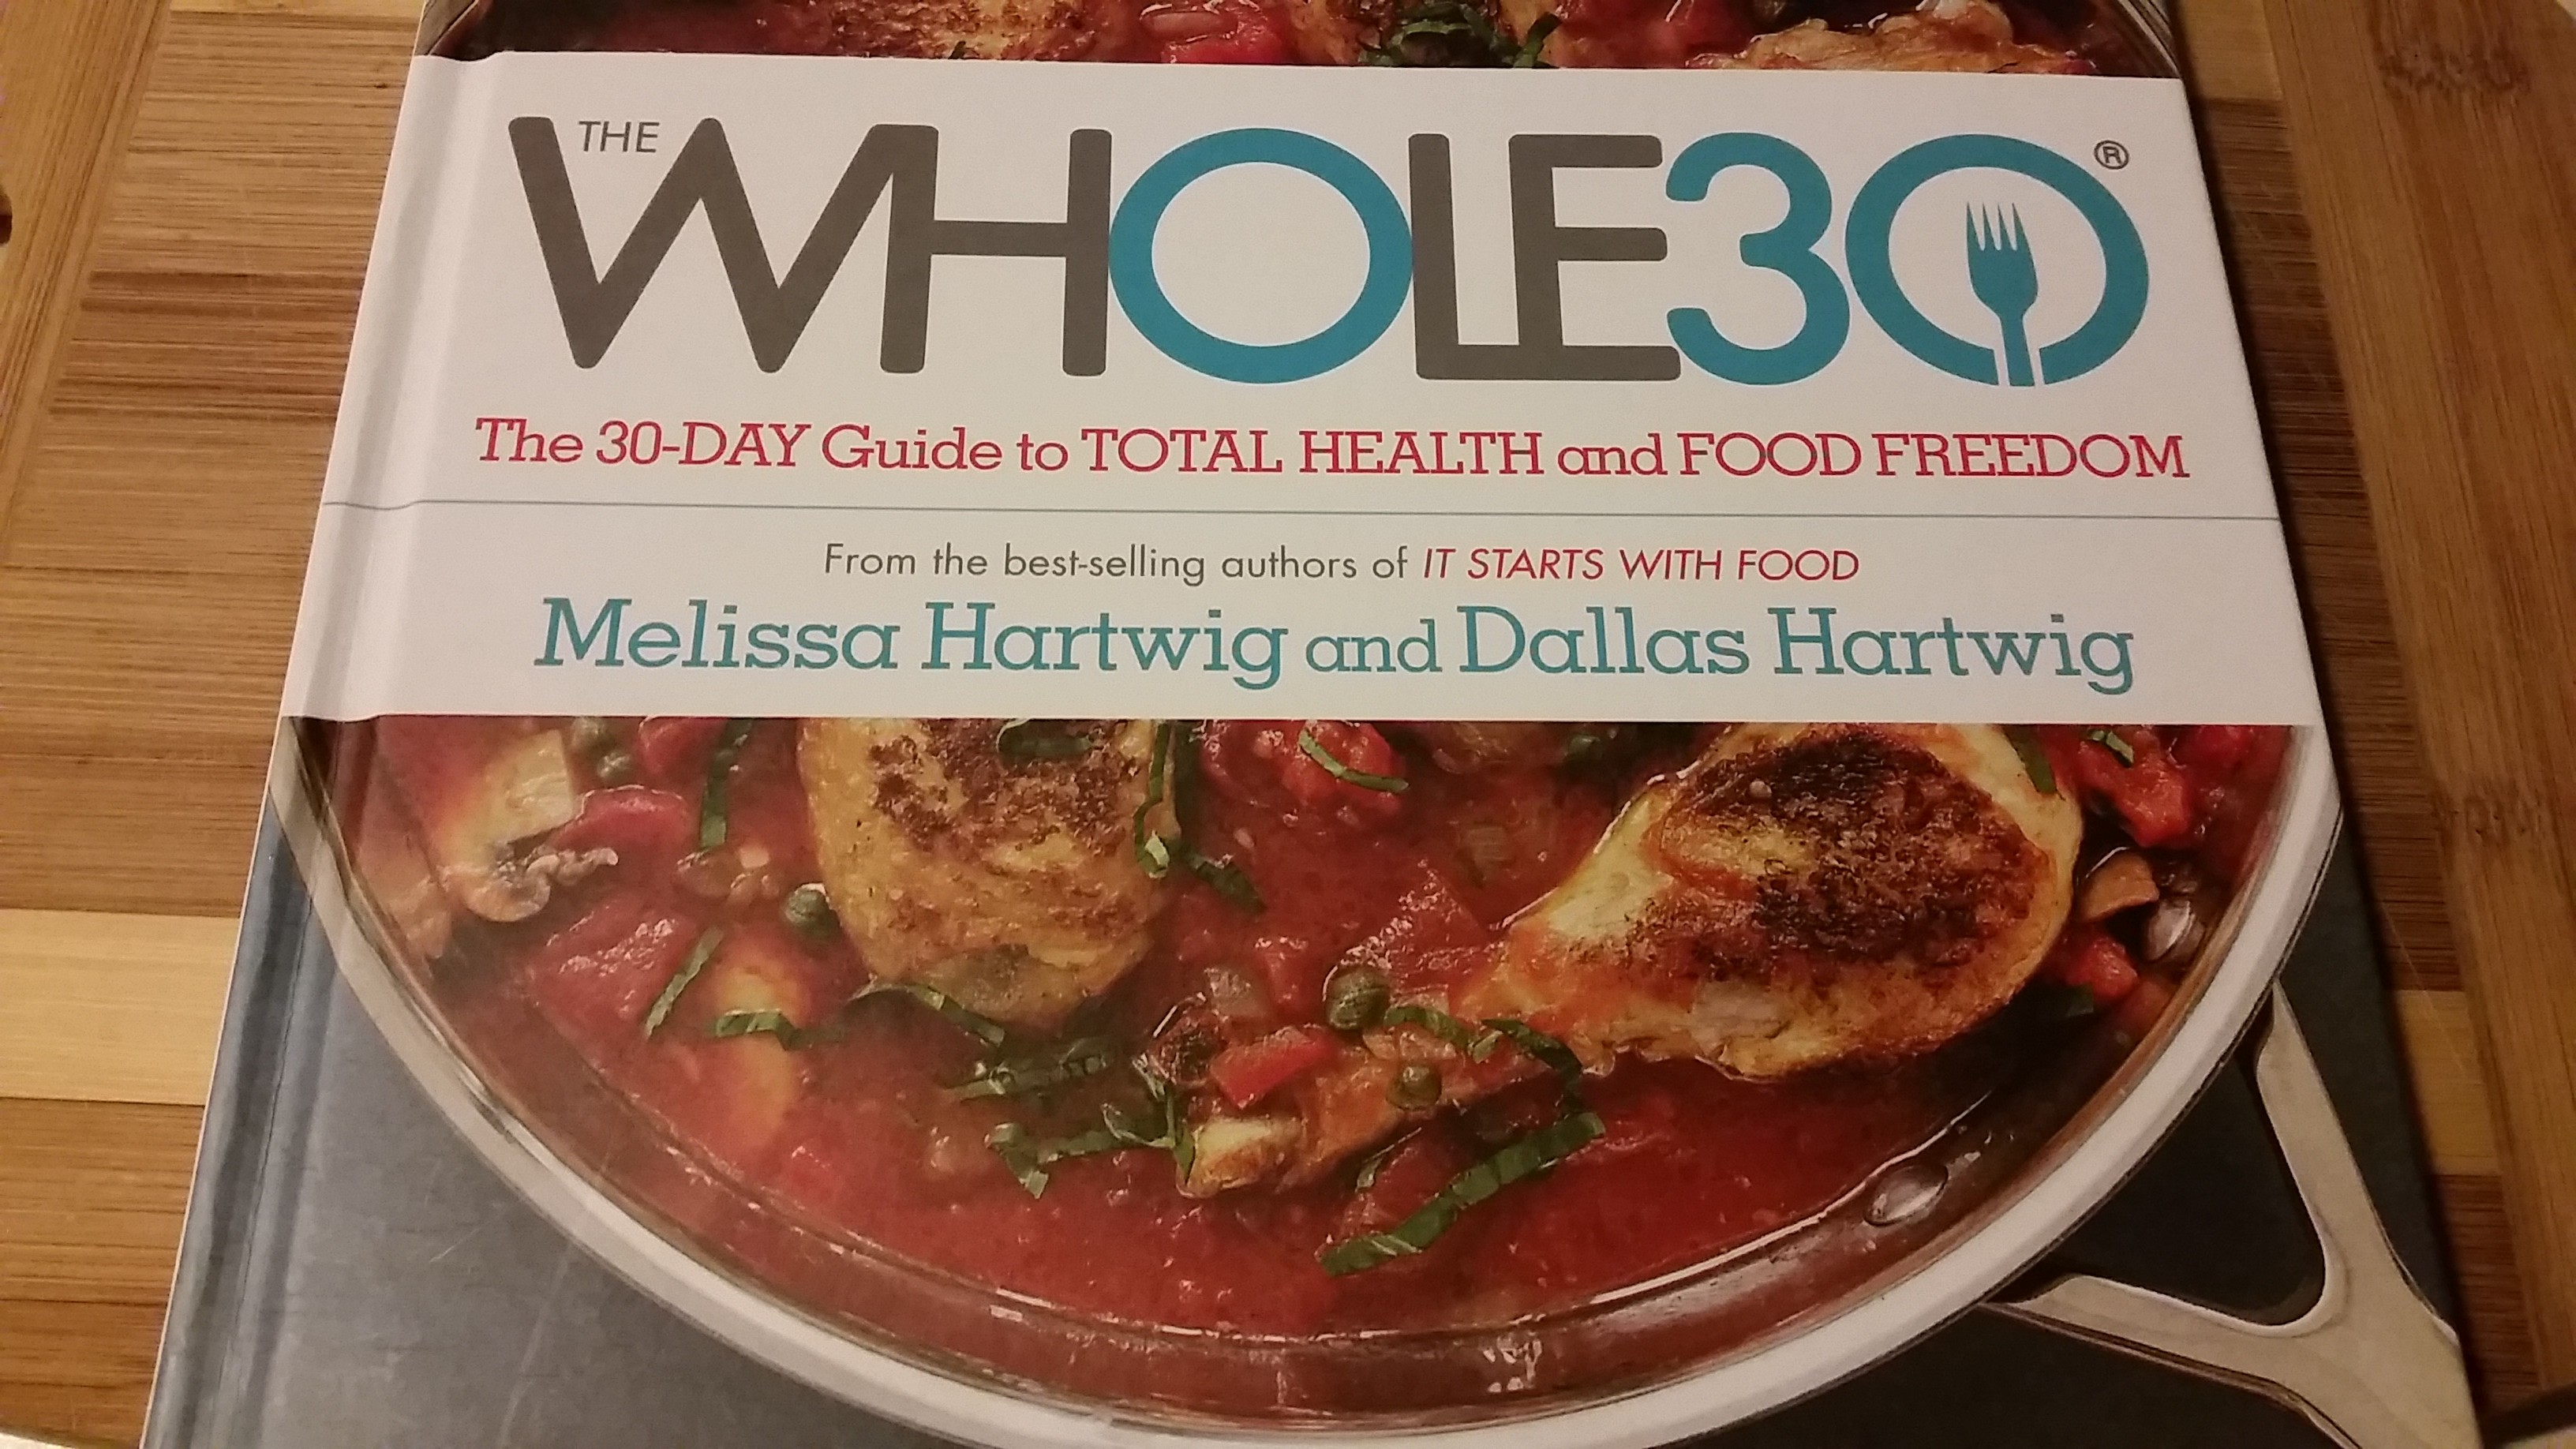 Heart to heart whole30 just another diet hardly a goddess whole 30 plan forumfinder Image collections